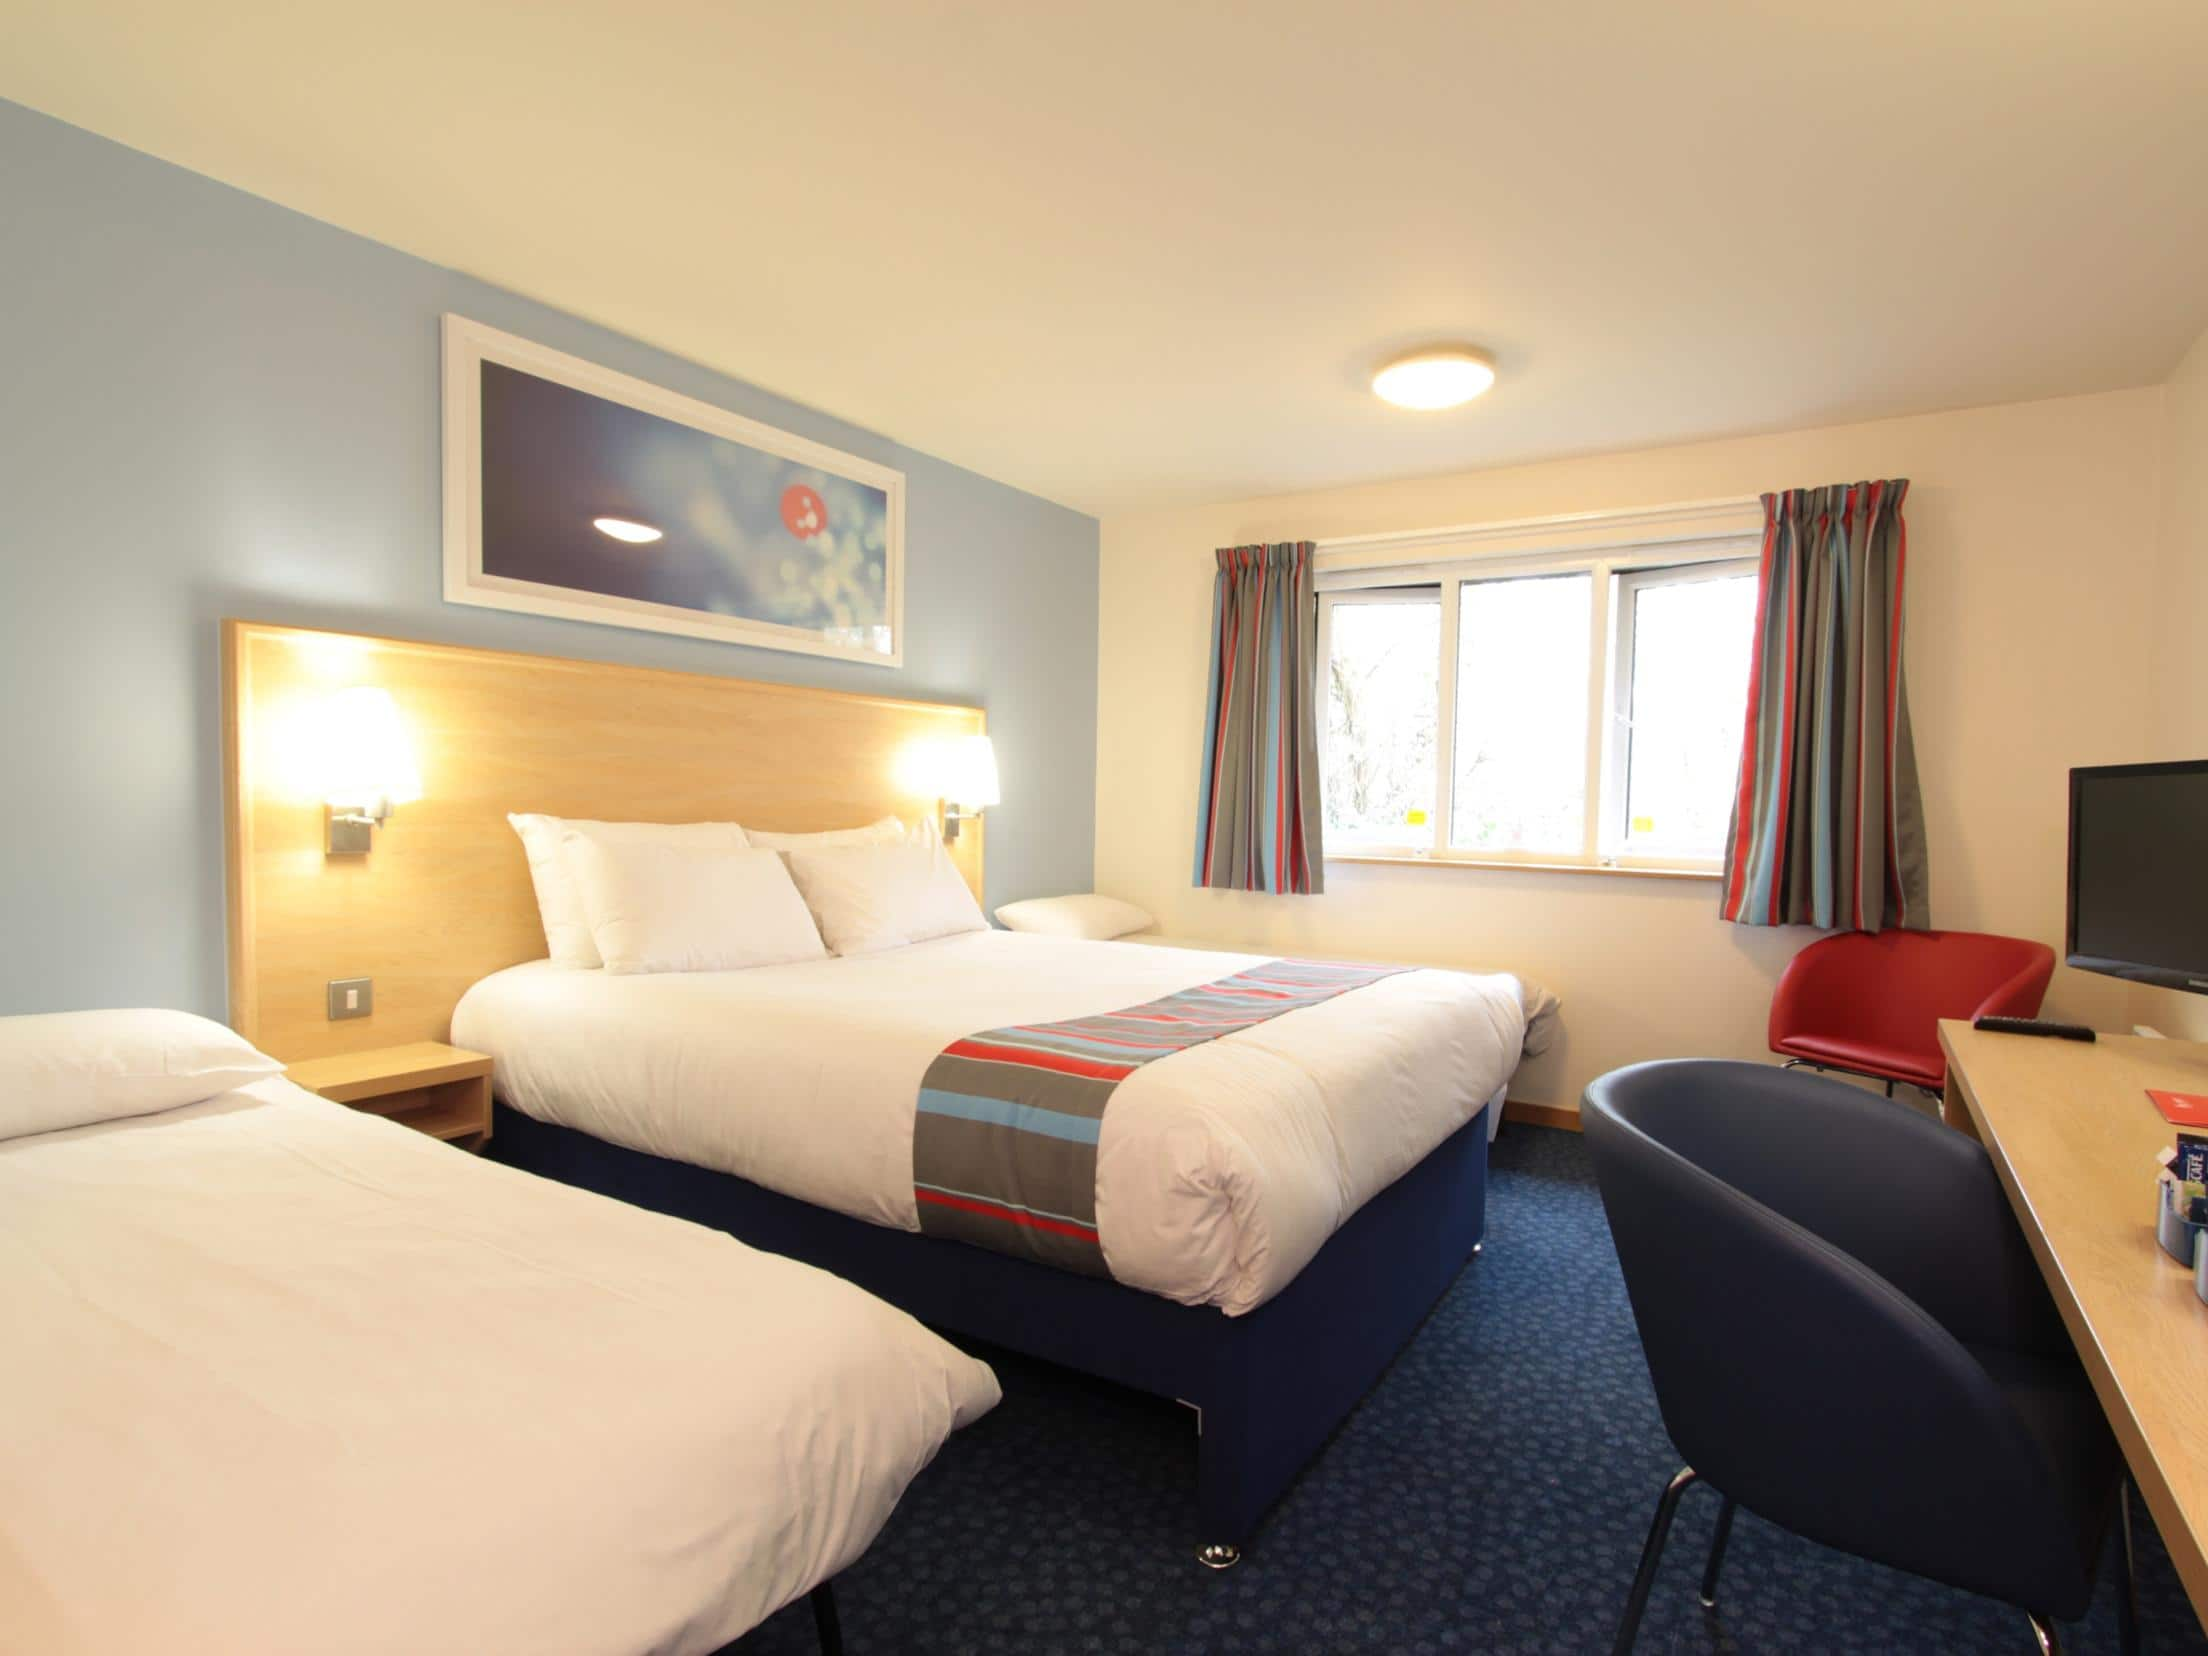 Travelodge lancaster m6 hotel lancaster m6 hotels for Family room accommodation